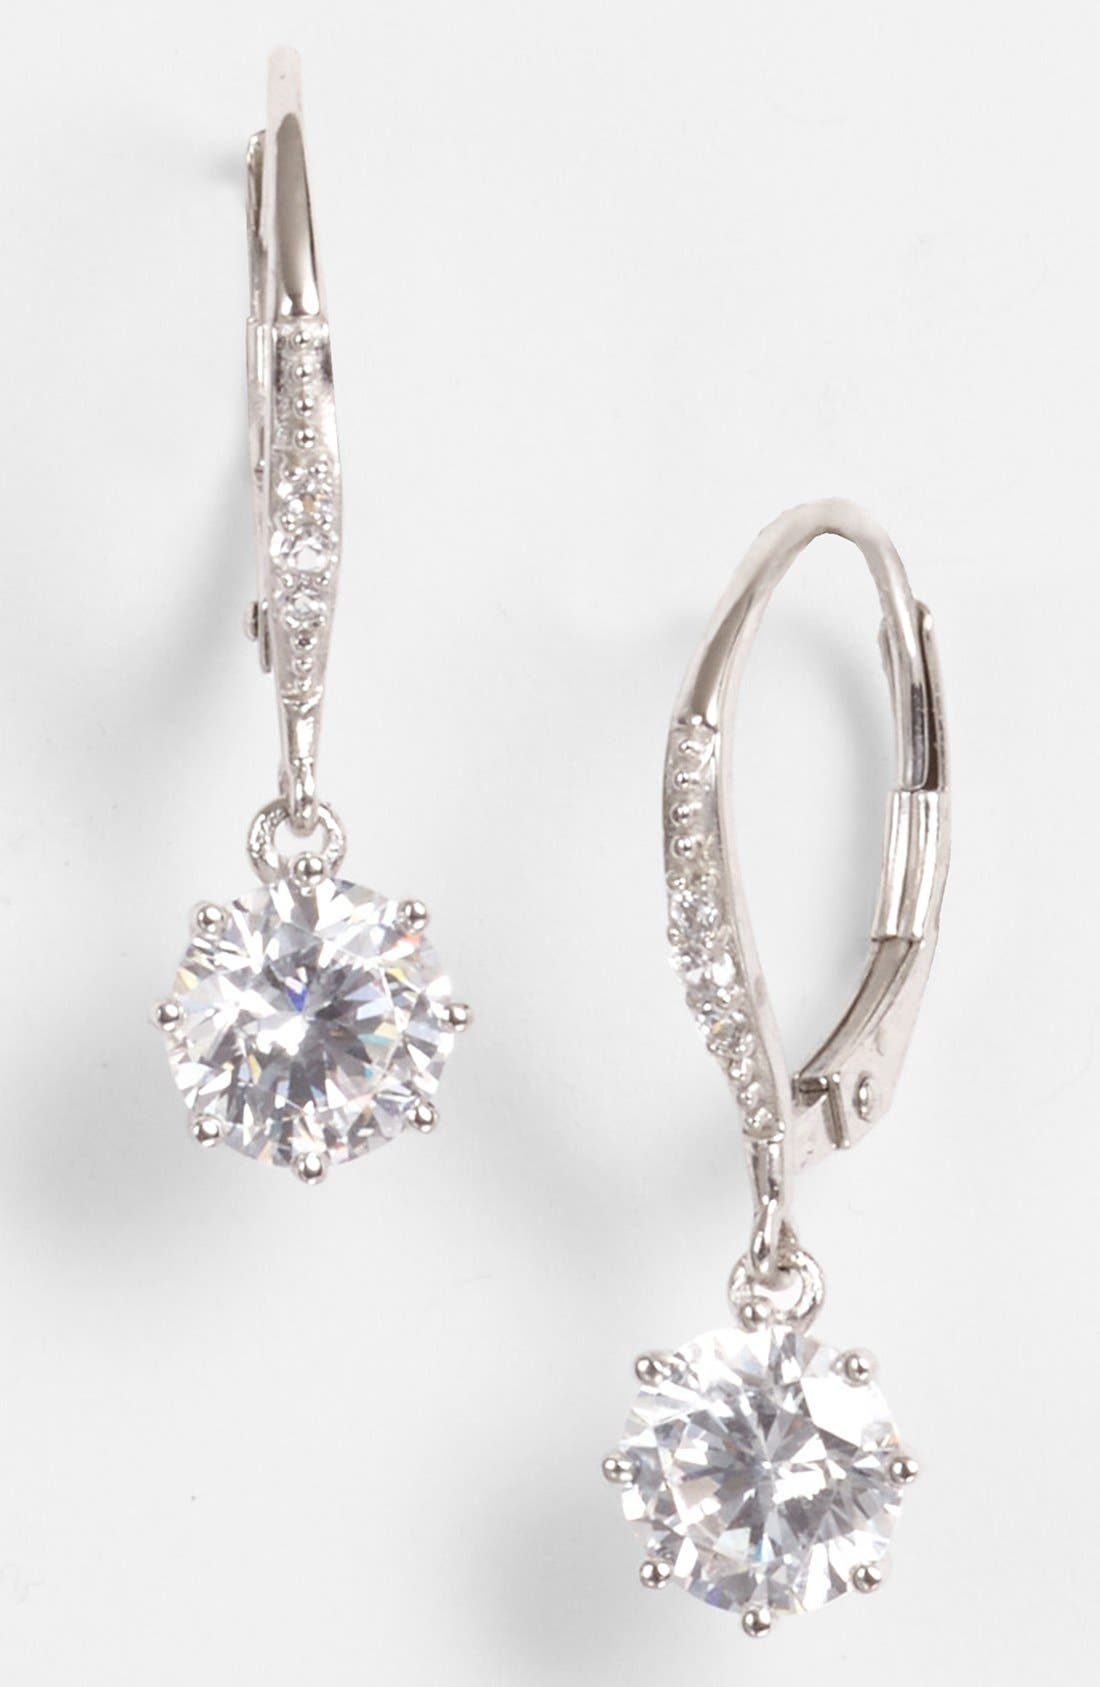 Alternate Image 1 Selected - Nordstrom Cubic Zirconia Drop Earrings (Special Purchase)